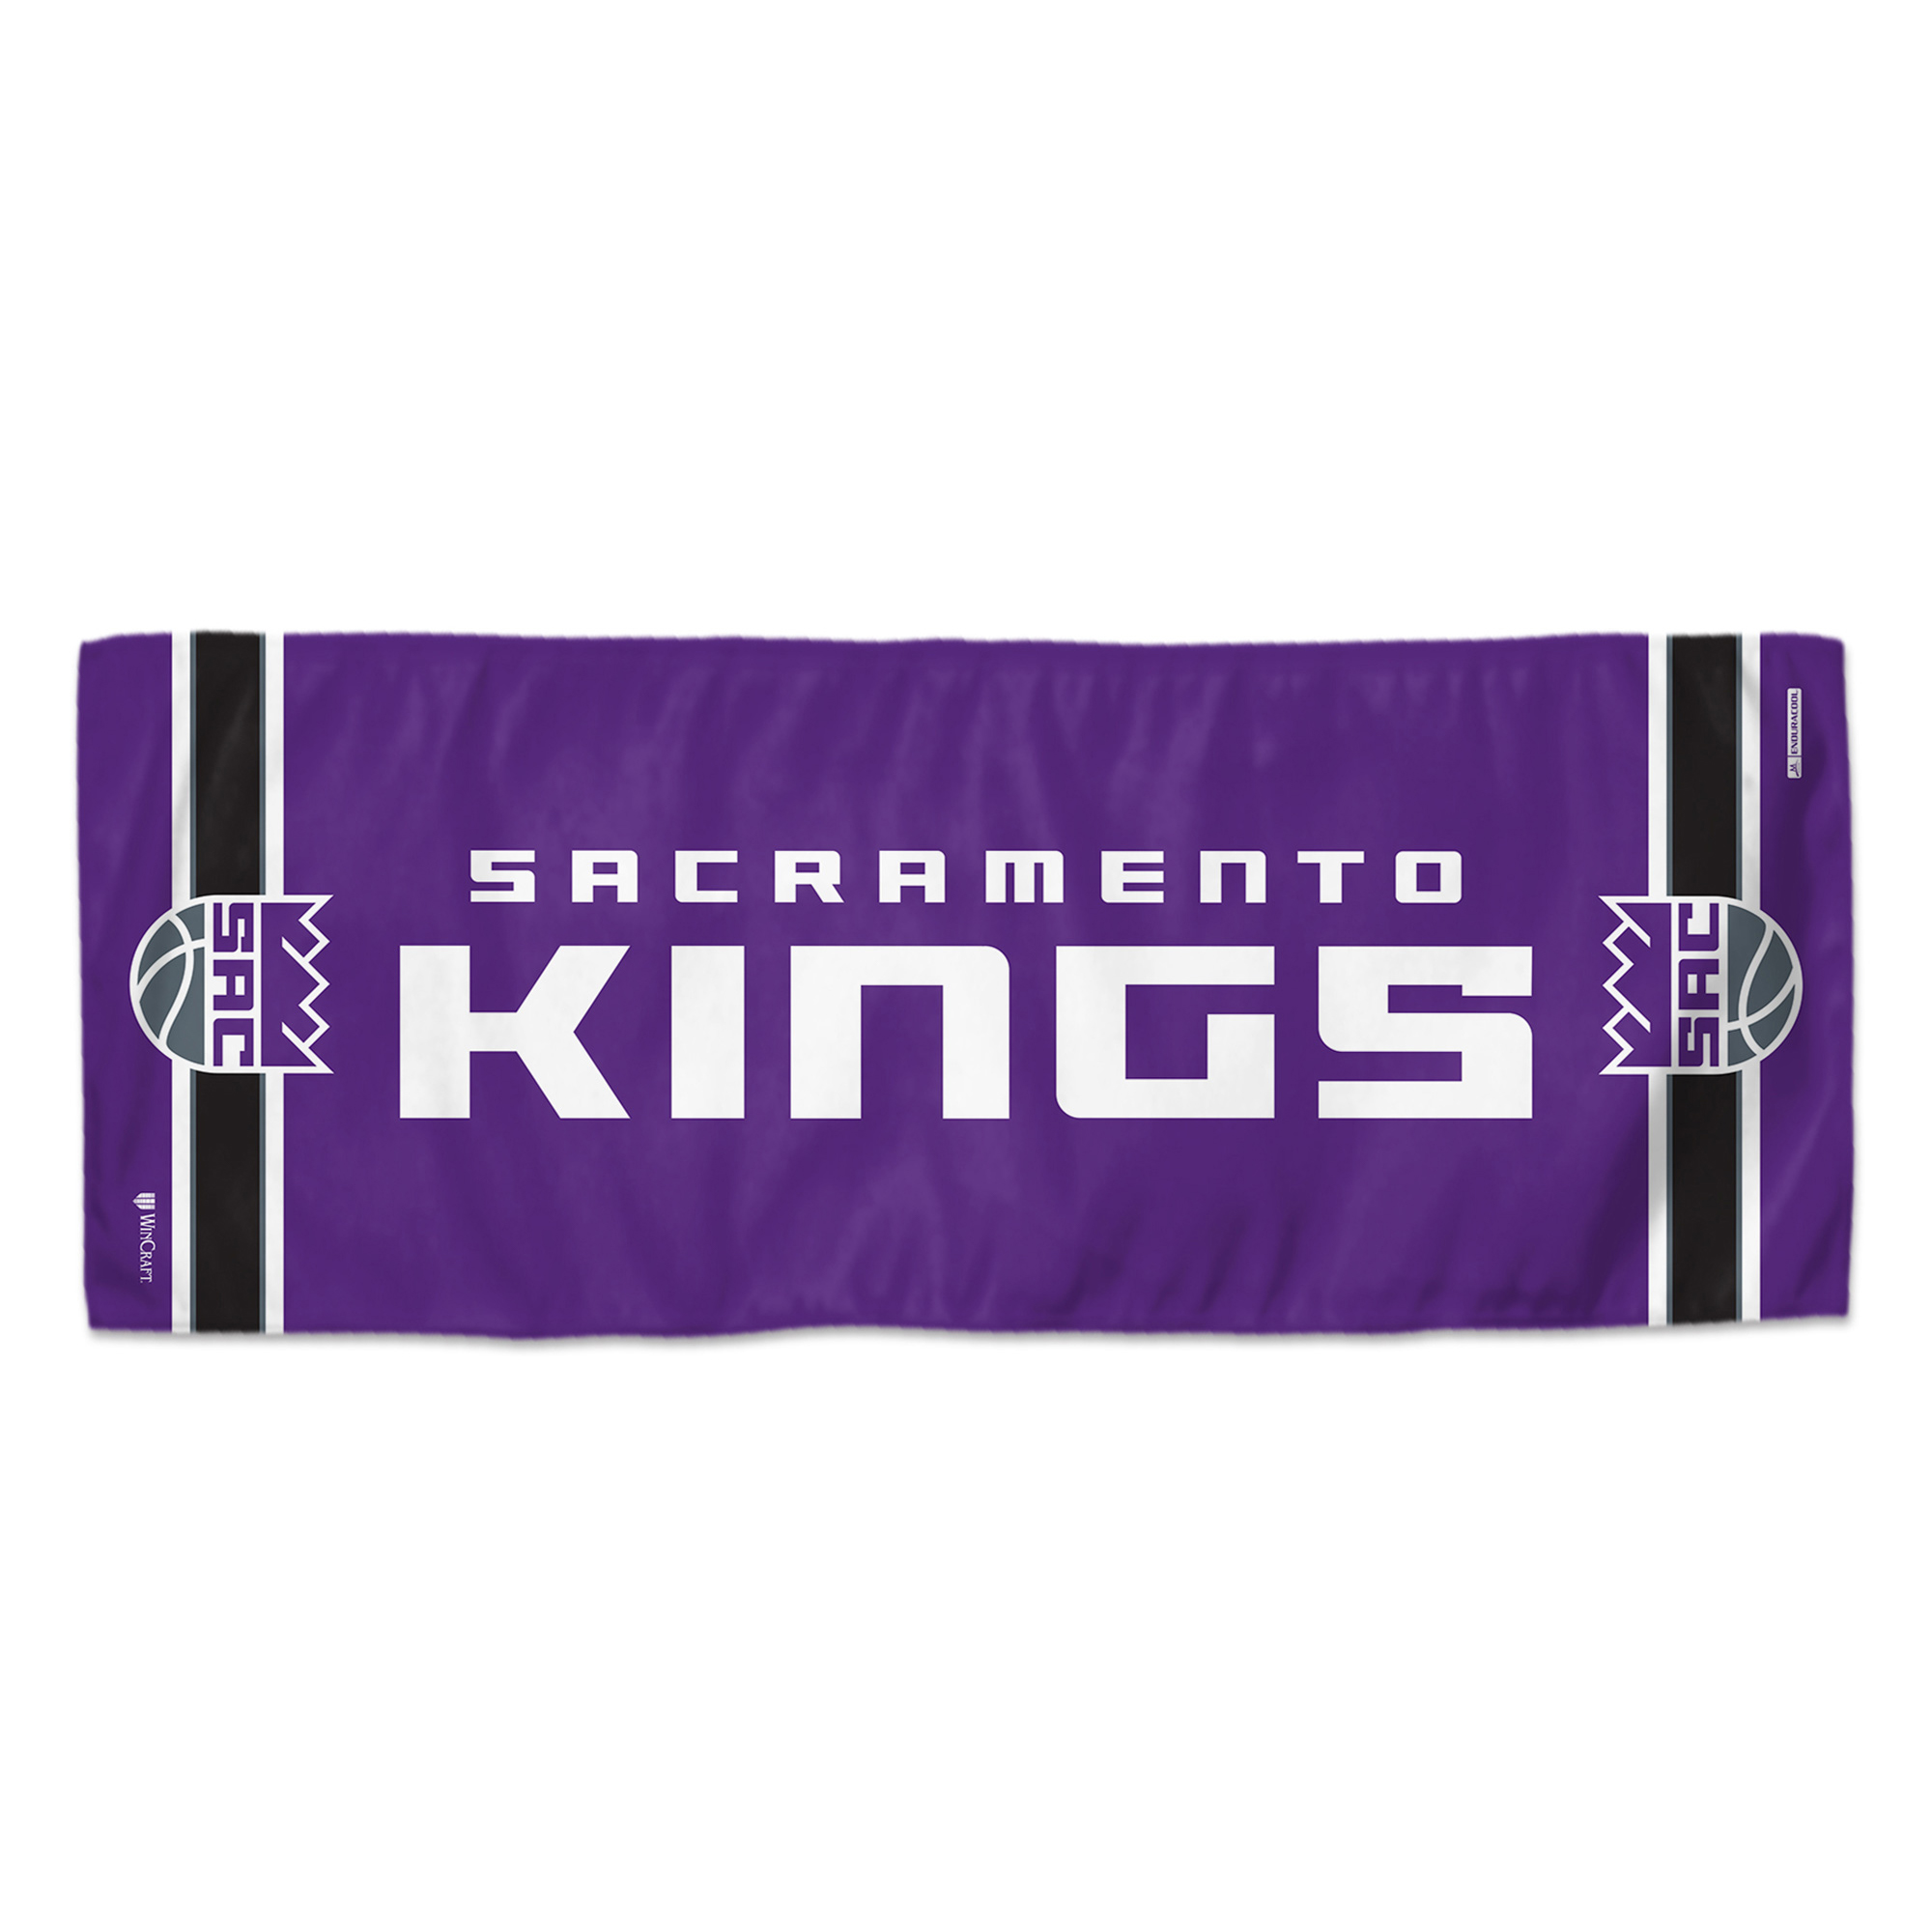 "Sacramento Kings WinCraft 12"" x 30"" Double-Sided Cooling Towel - No Size"